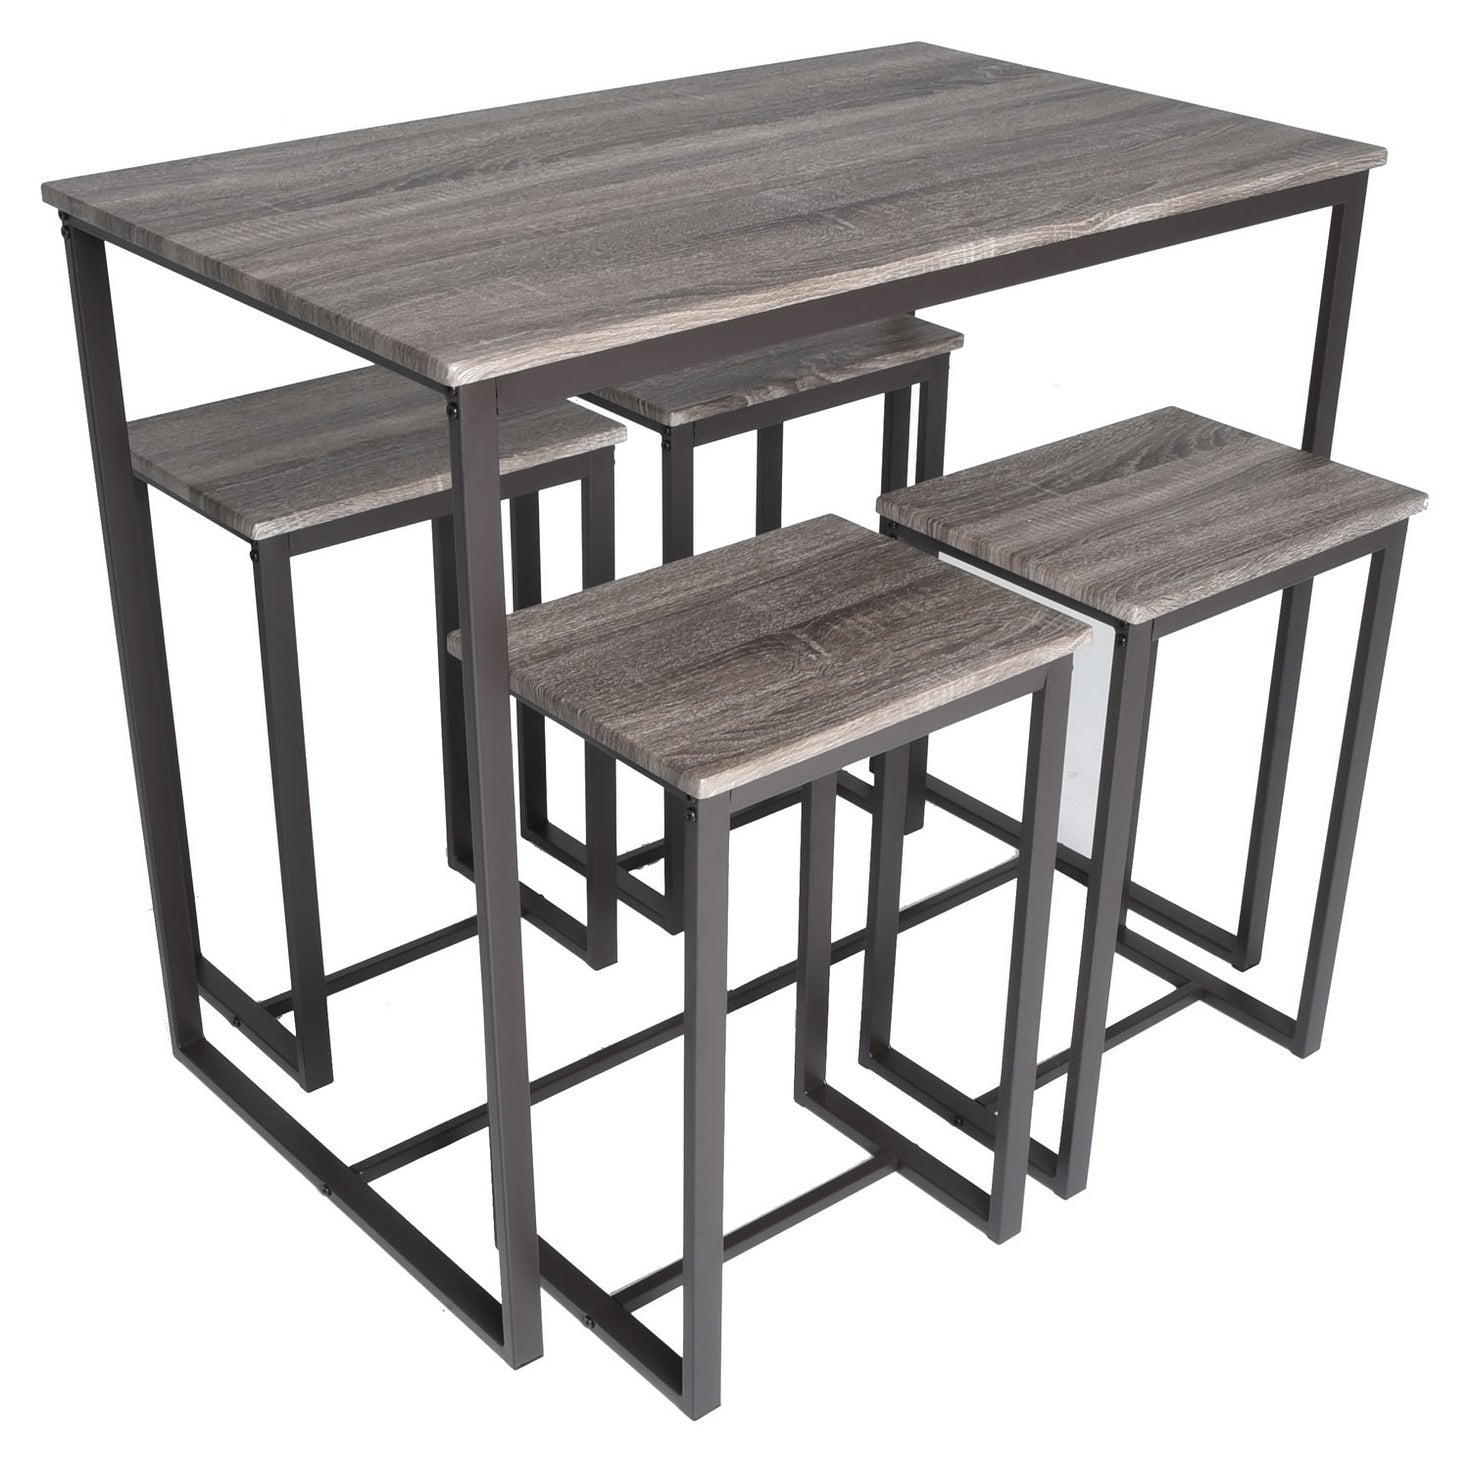 Zenvida 5 Piece Bistro Pub Table Set With 4 Stools